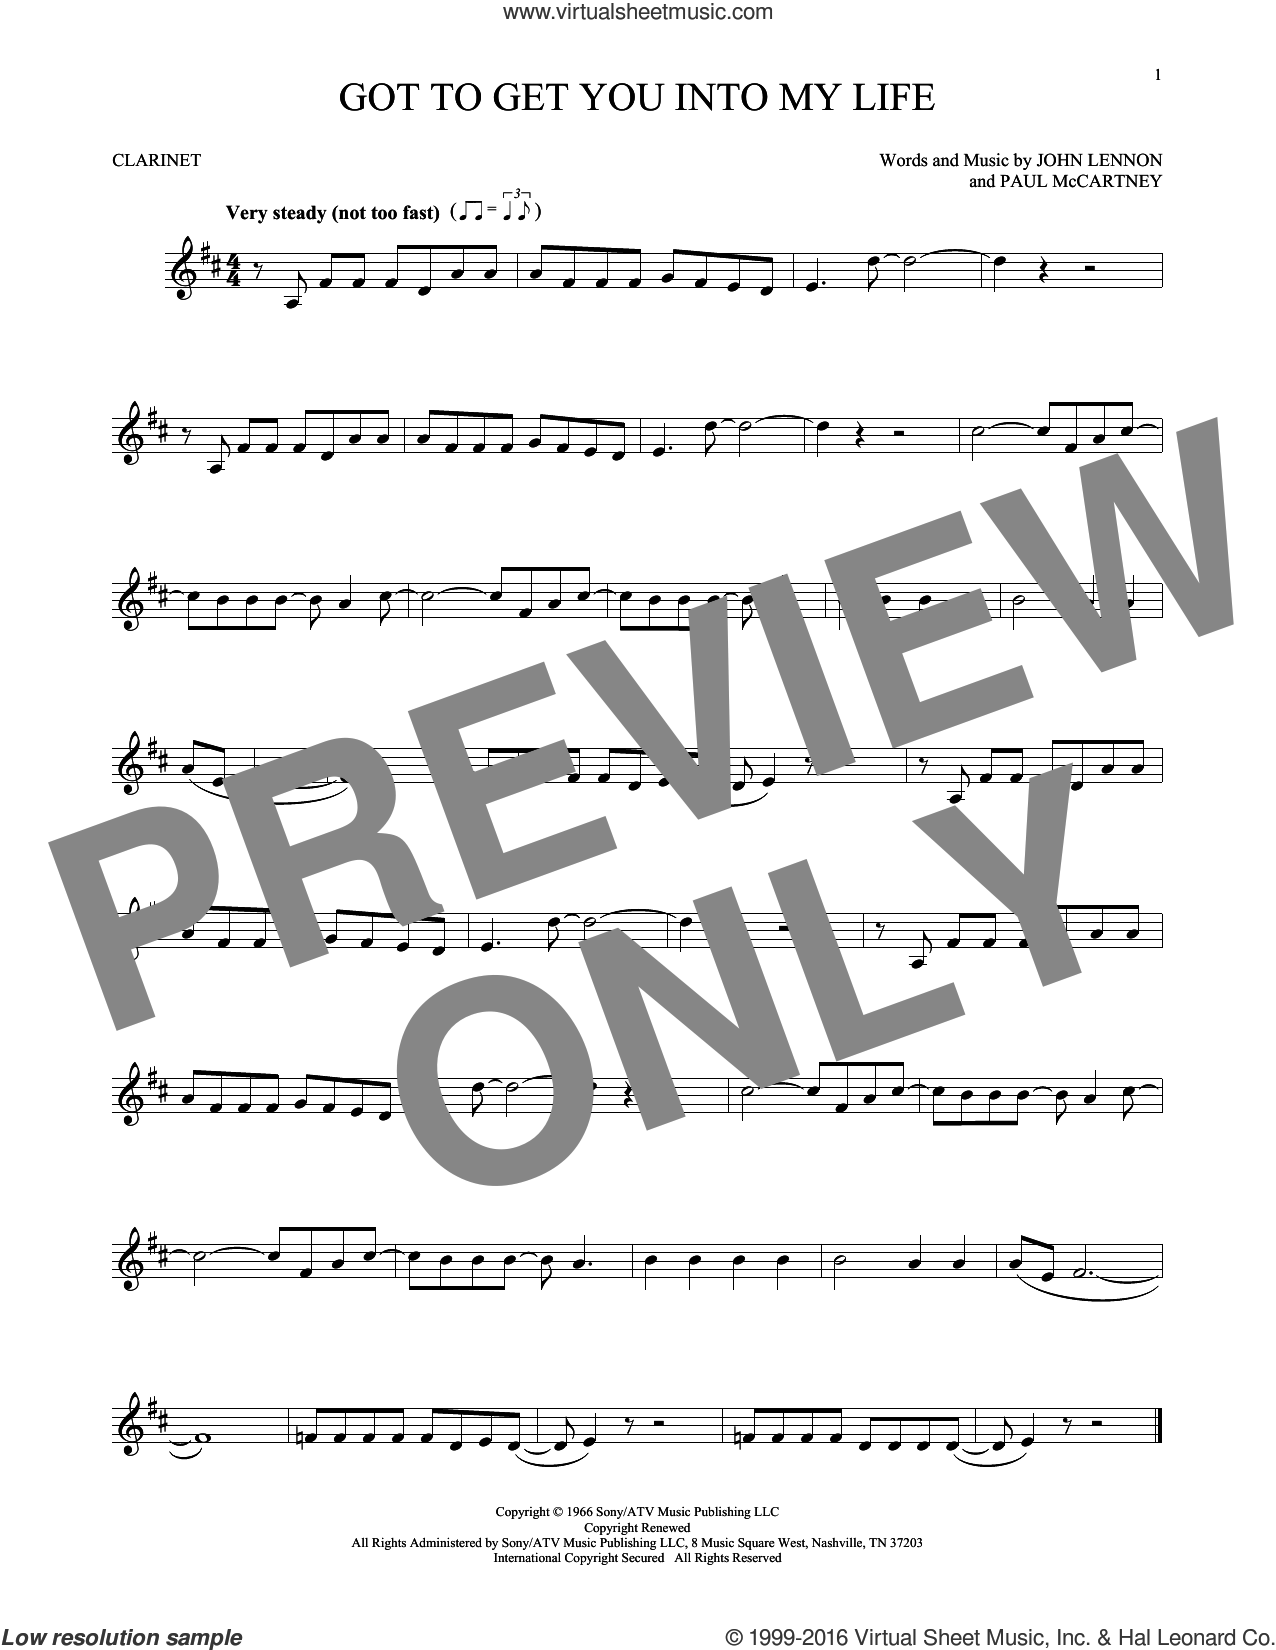 Got To Get You Into My Life sheet music for clarinet solo by The Beatles, John Lennon and Paul McCartney, intermediate clarinet. Score Image Preview.